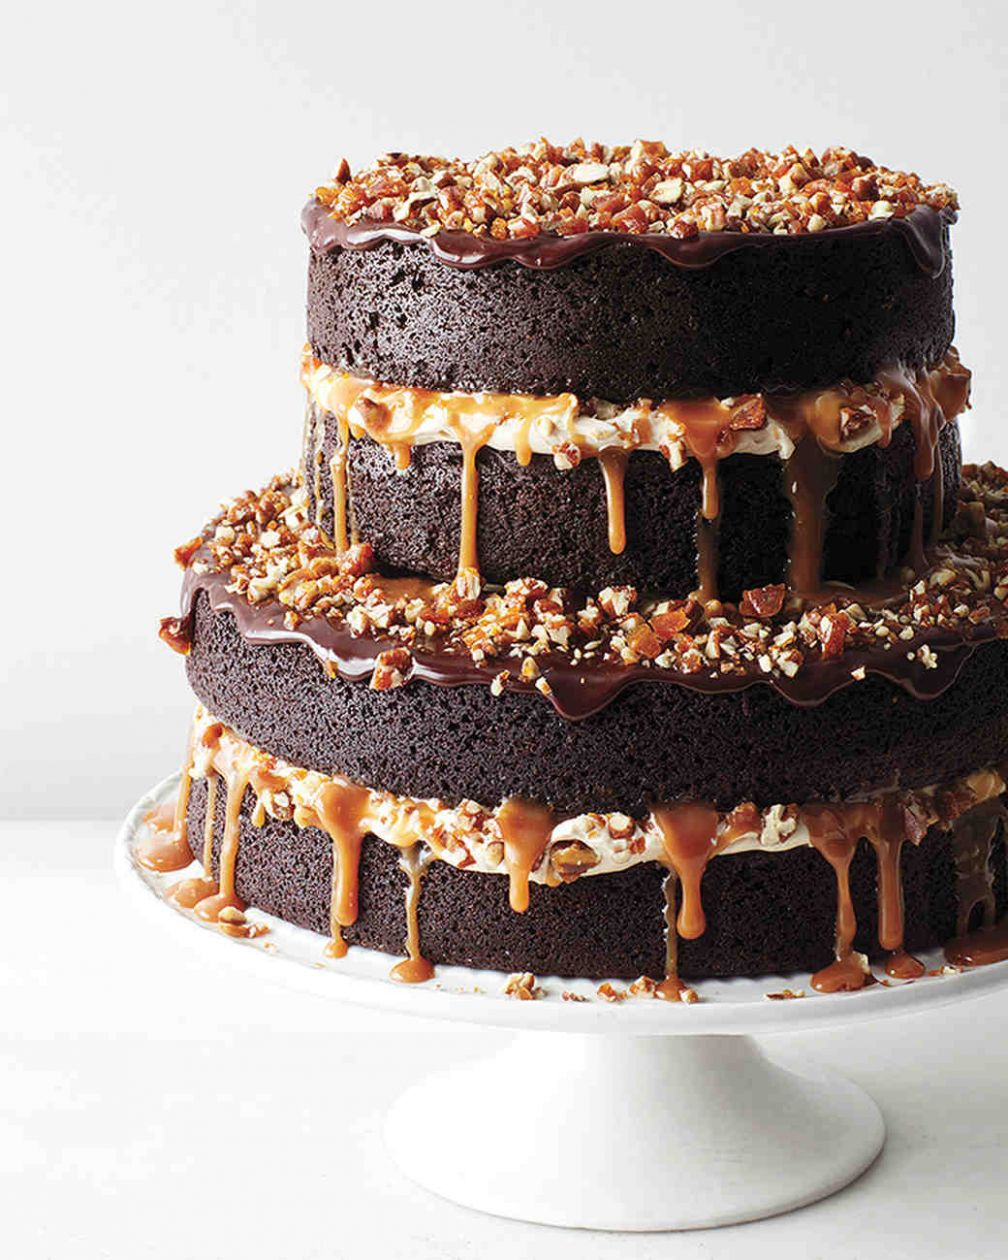 Chocolate Stout Cake with Caramel Buttercream, Salted Caramel, Candied  Pecans, and Ganache - Cake Recipes Martha Stewart